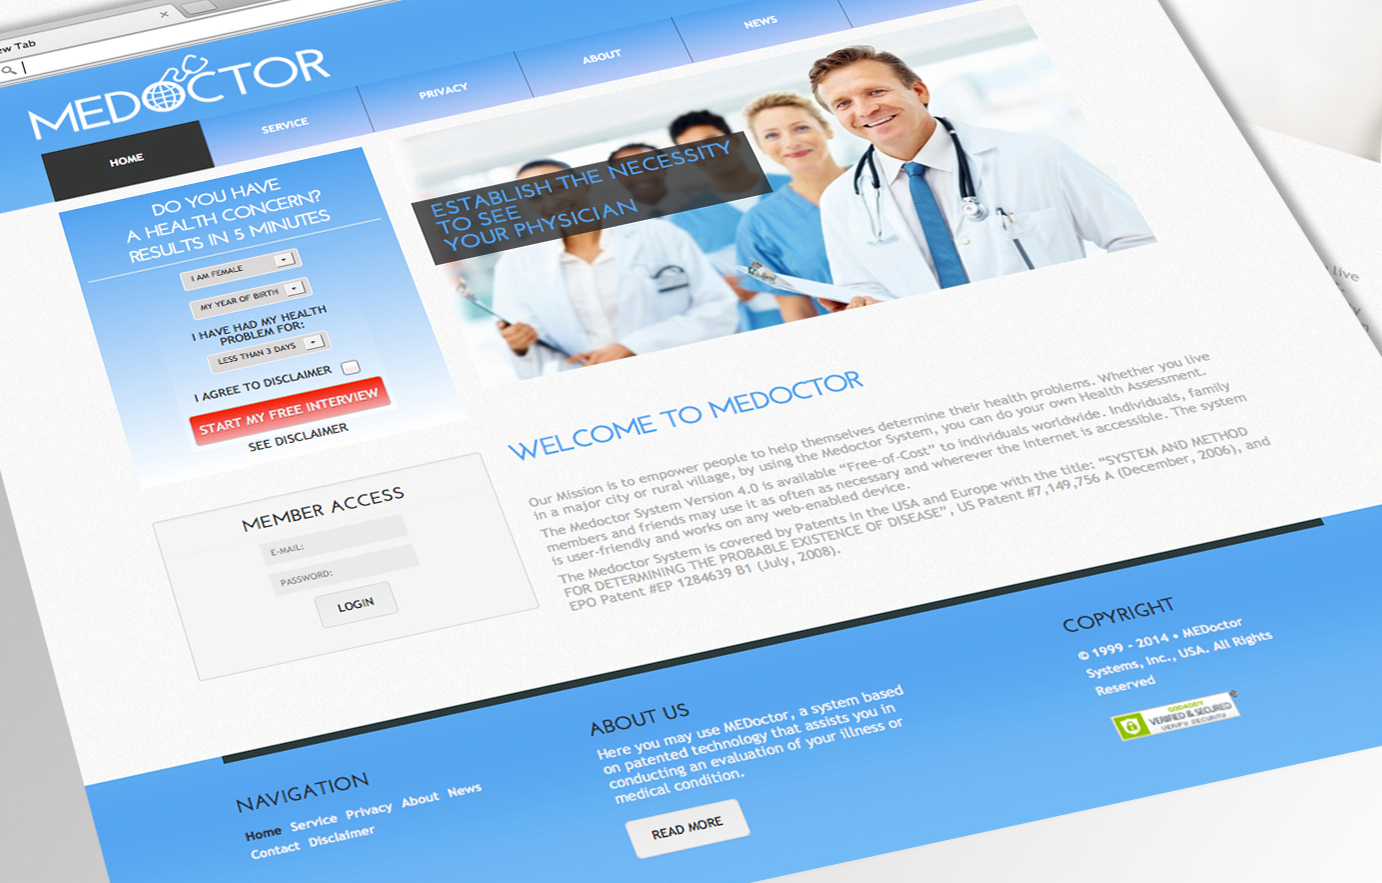 OLD WEBSITE OF MEDOCTOR